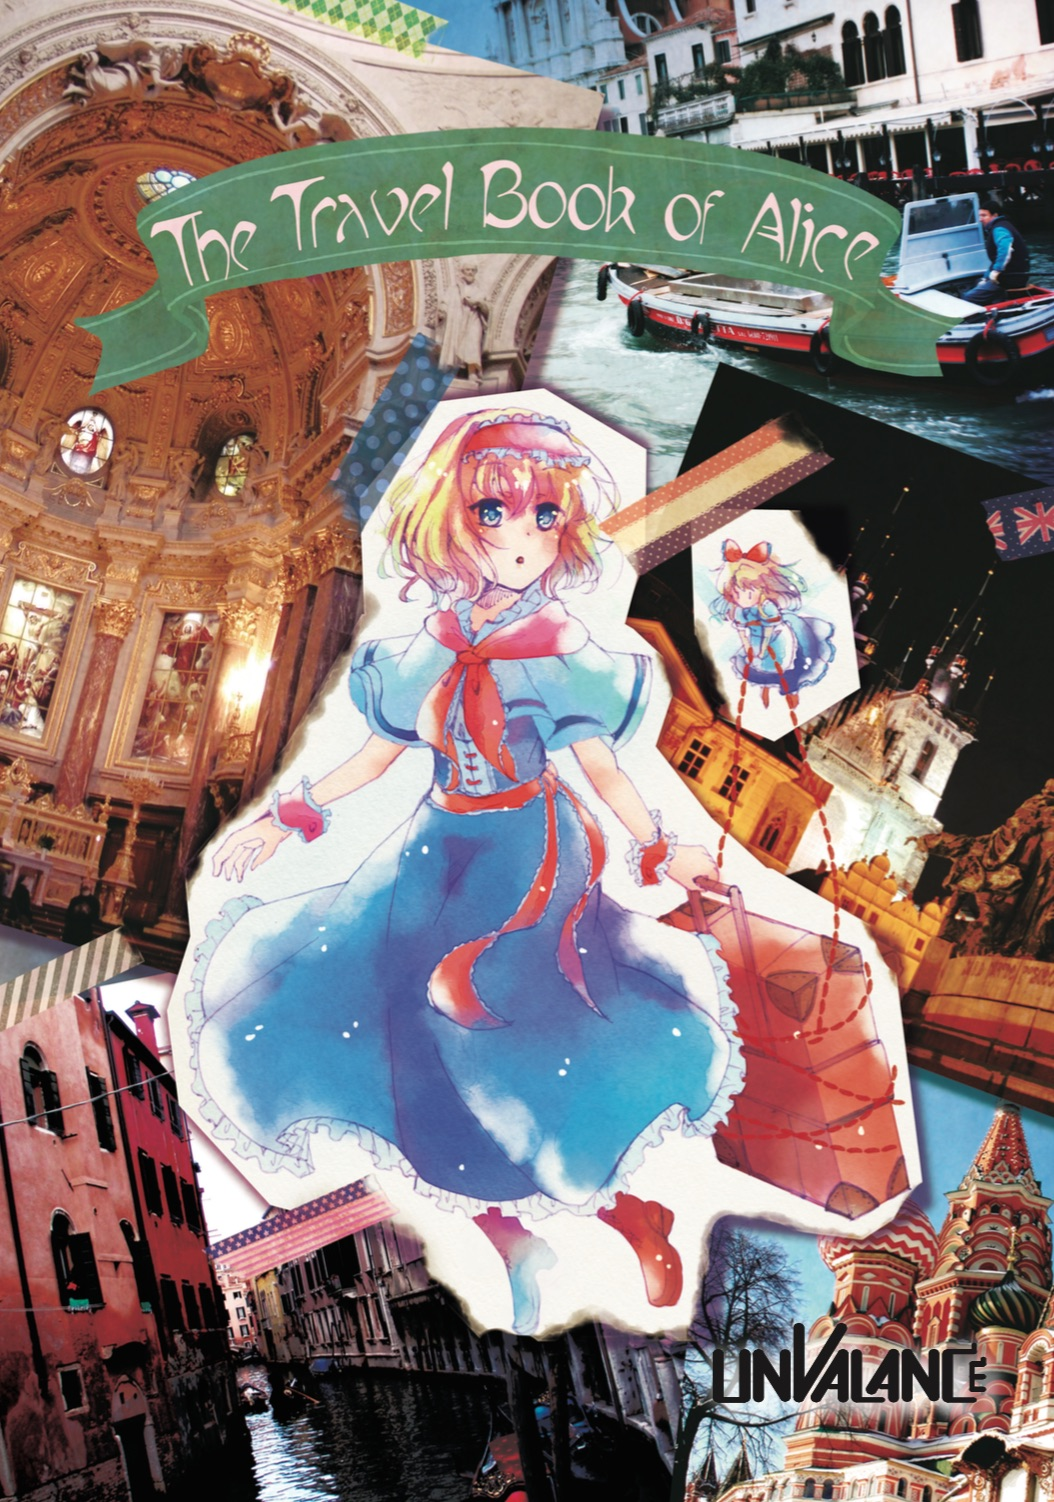 The Travel Book of Alice